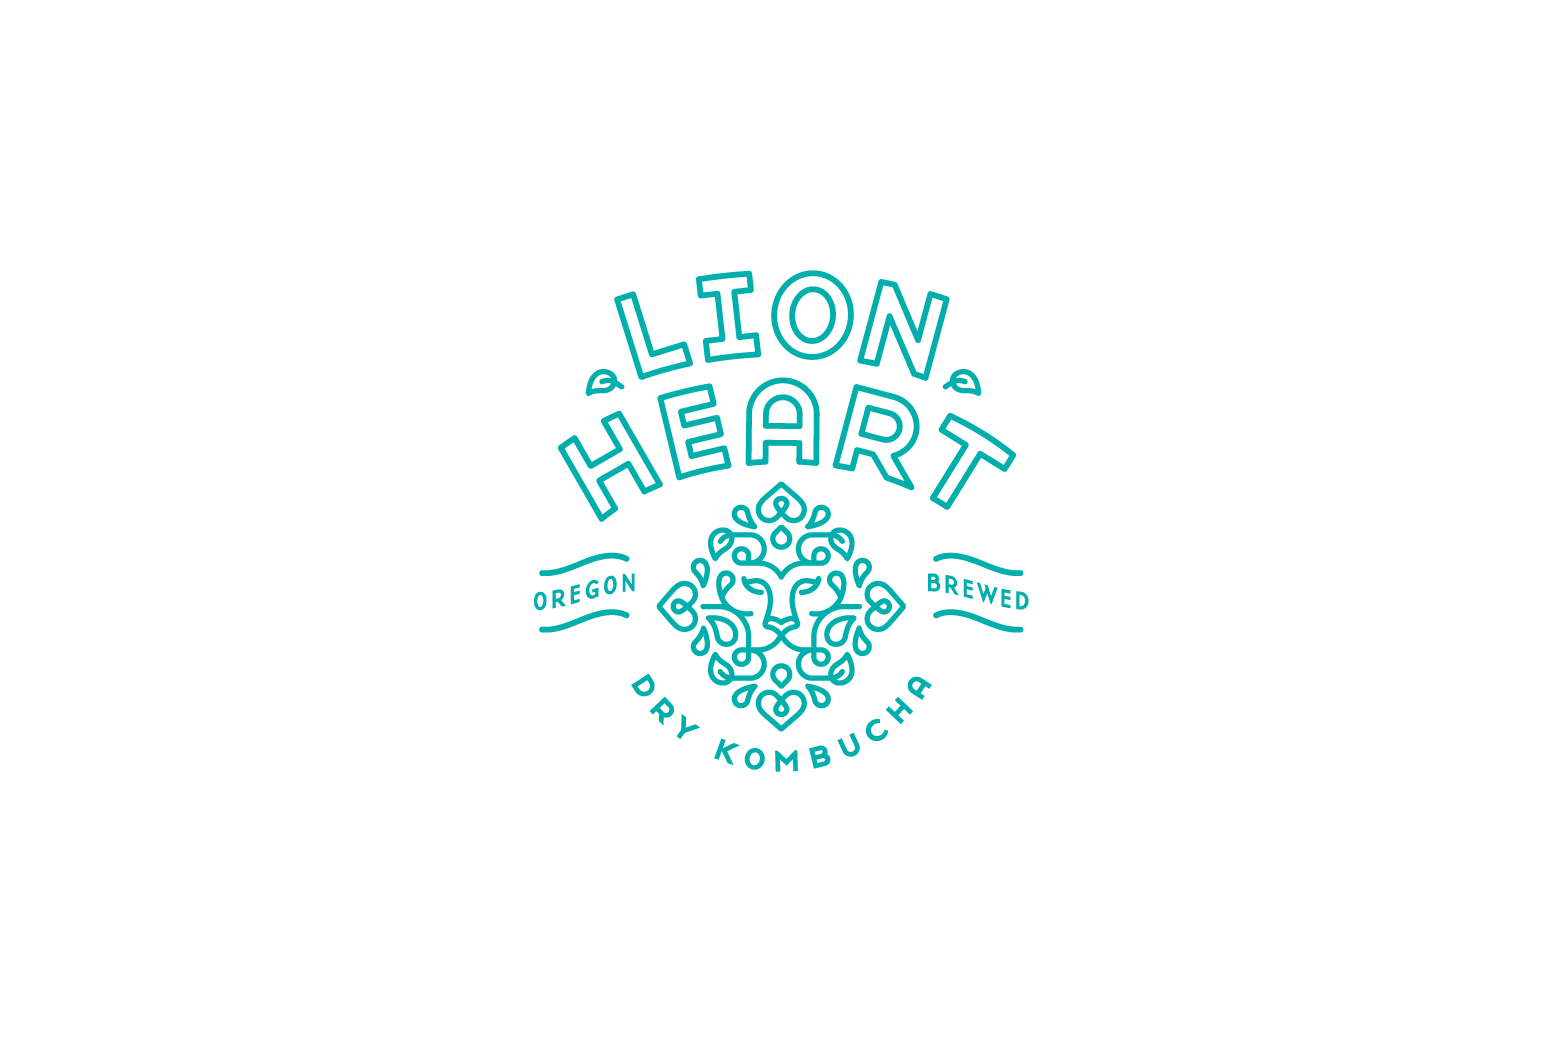 Lion Heart Kombucha Logo Design